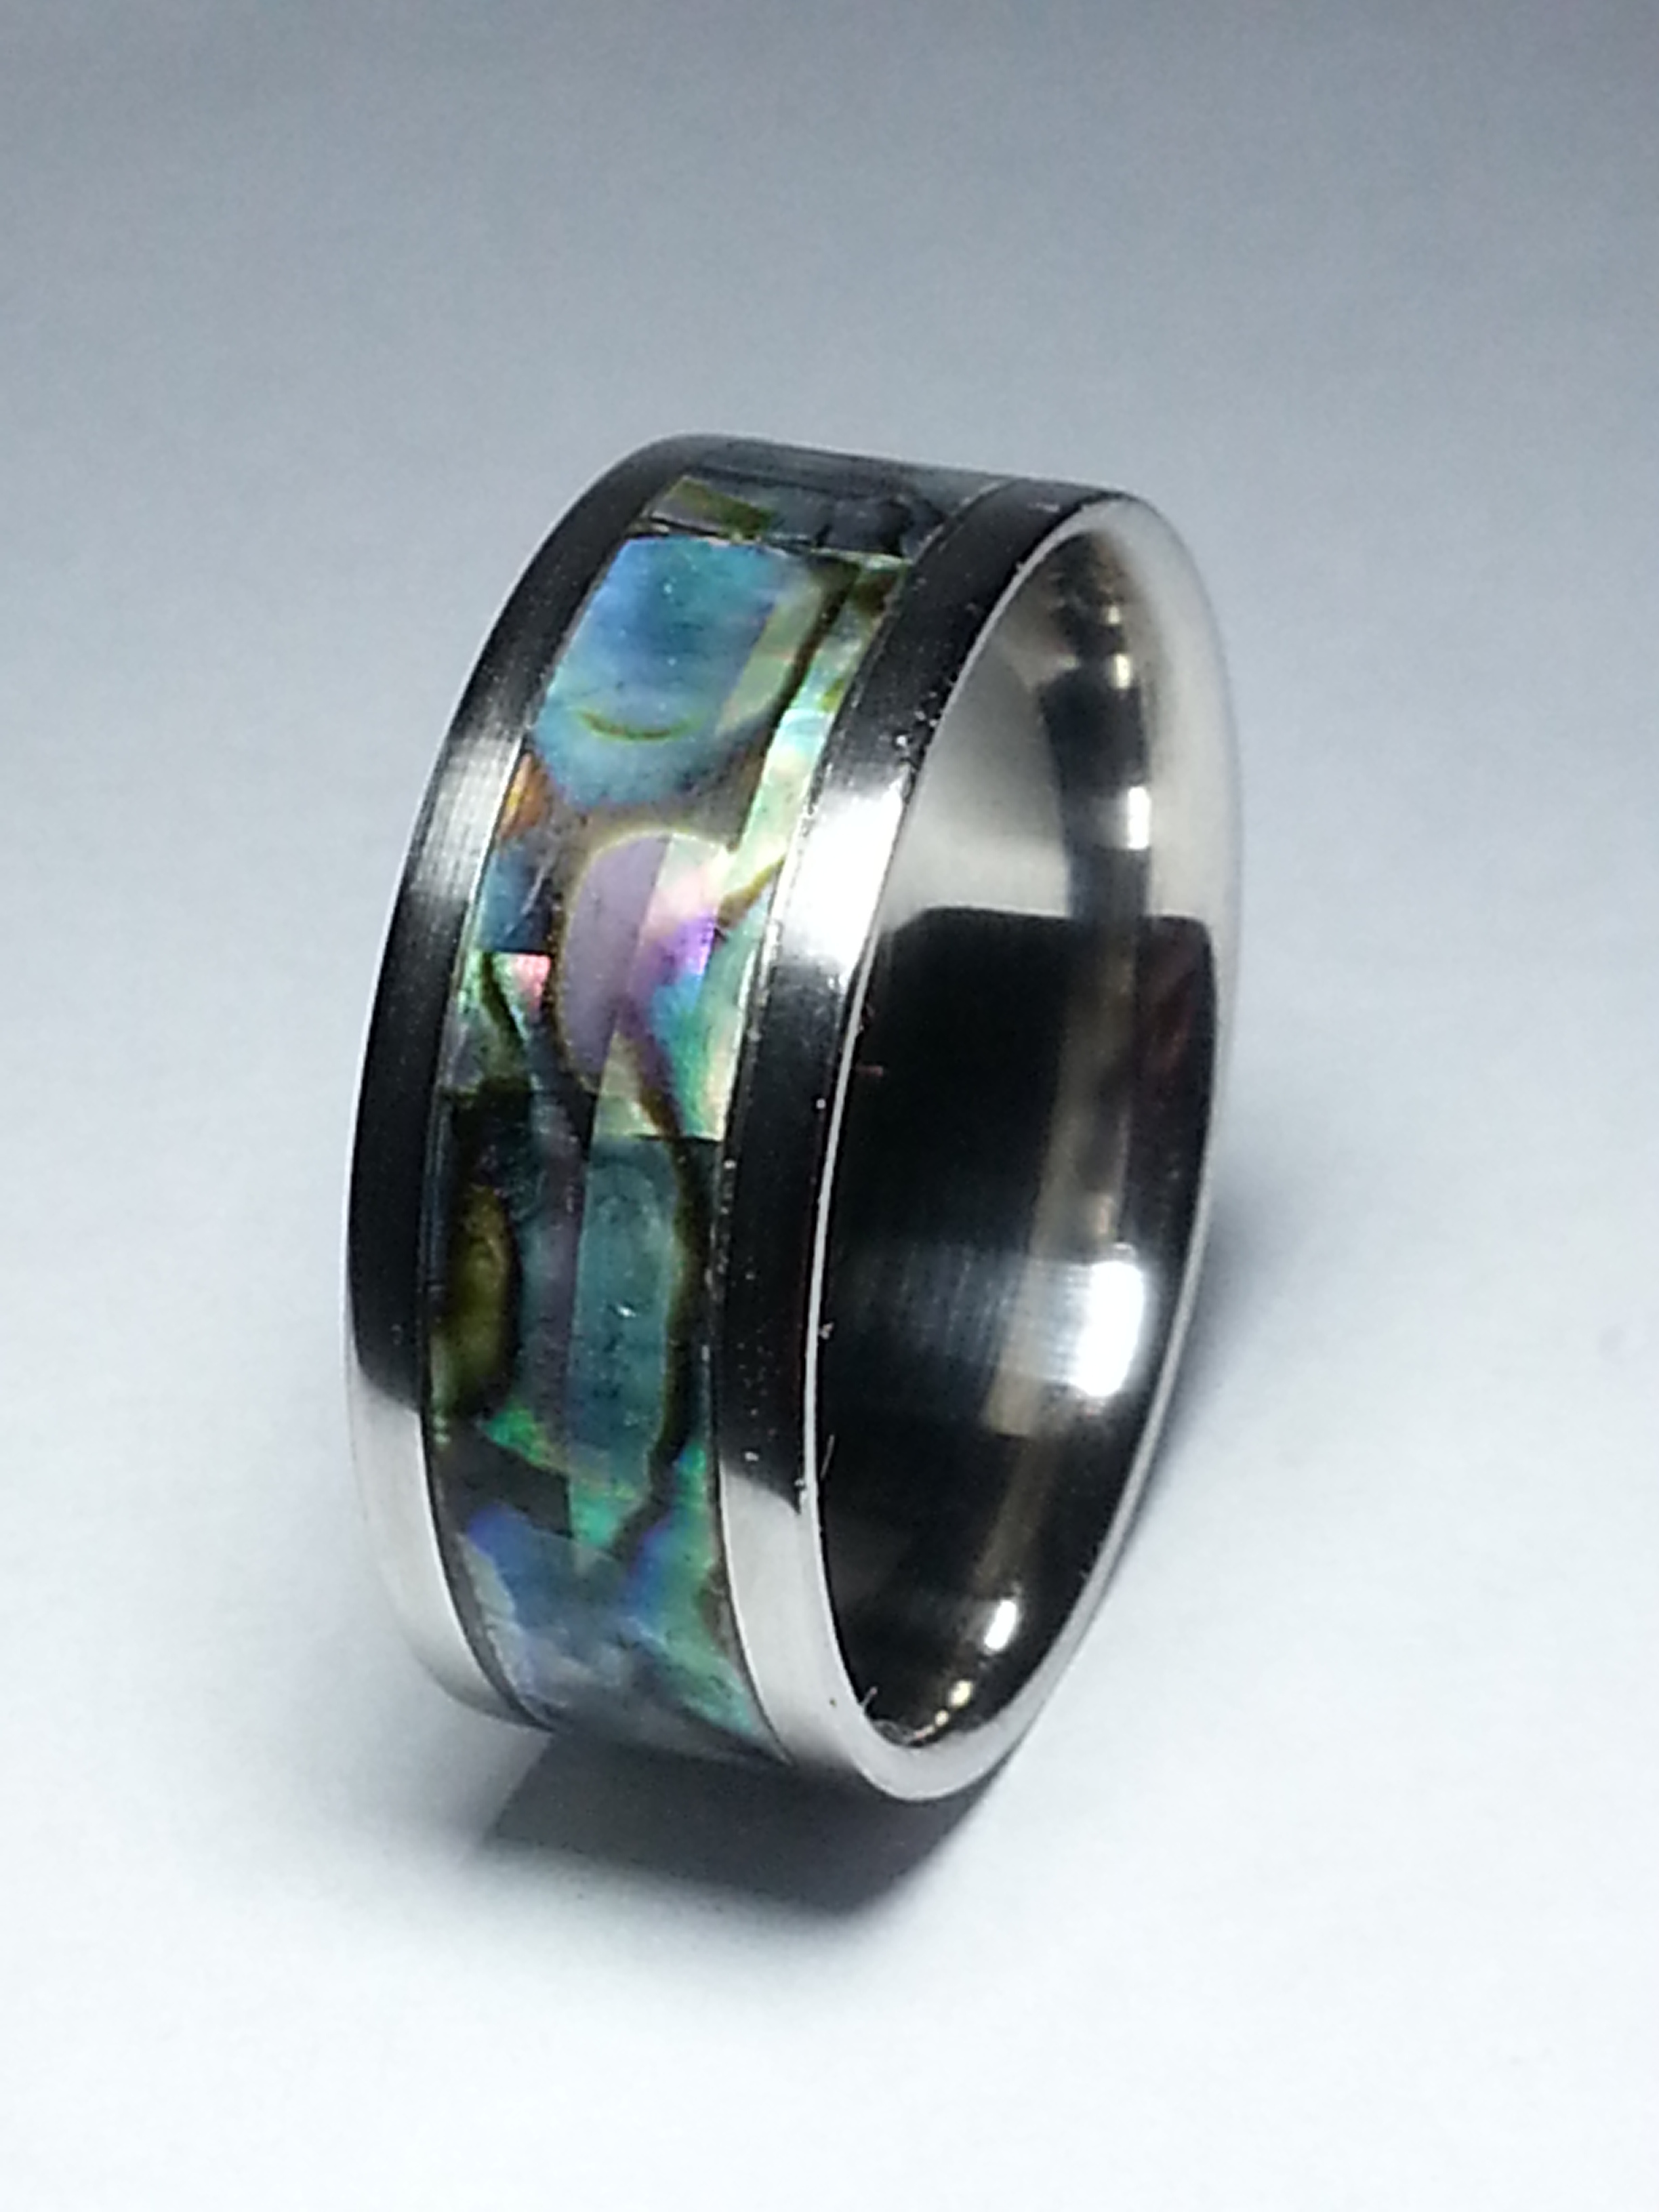 Stainless Steel Ring + Real Abalone shell